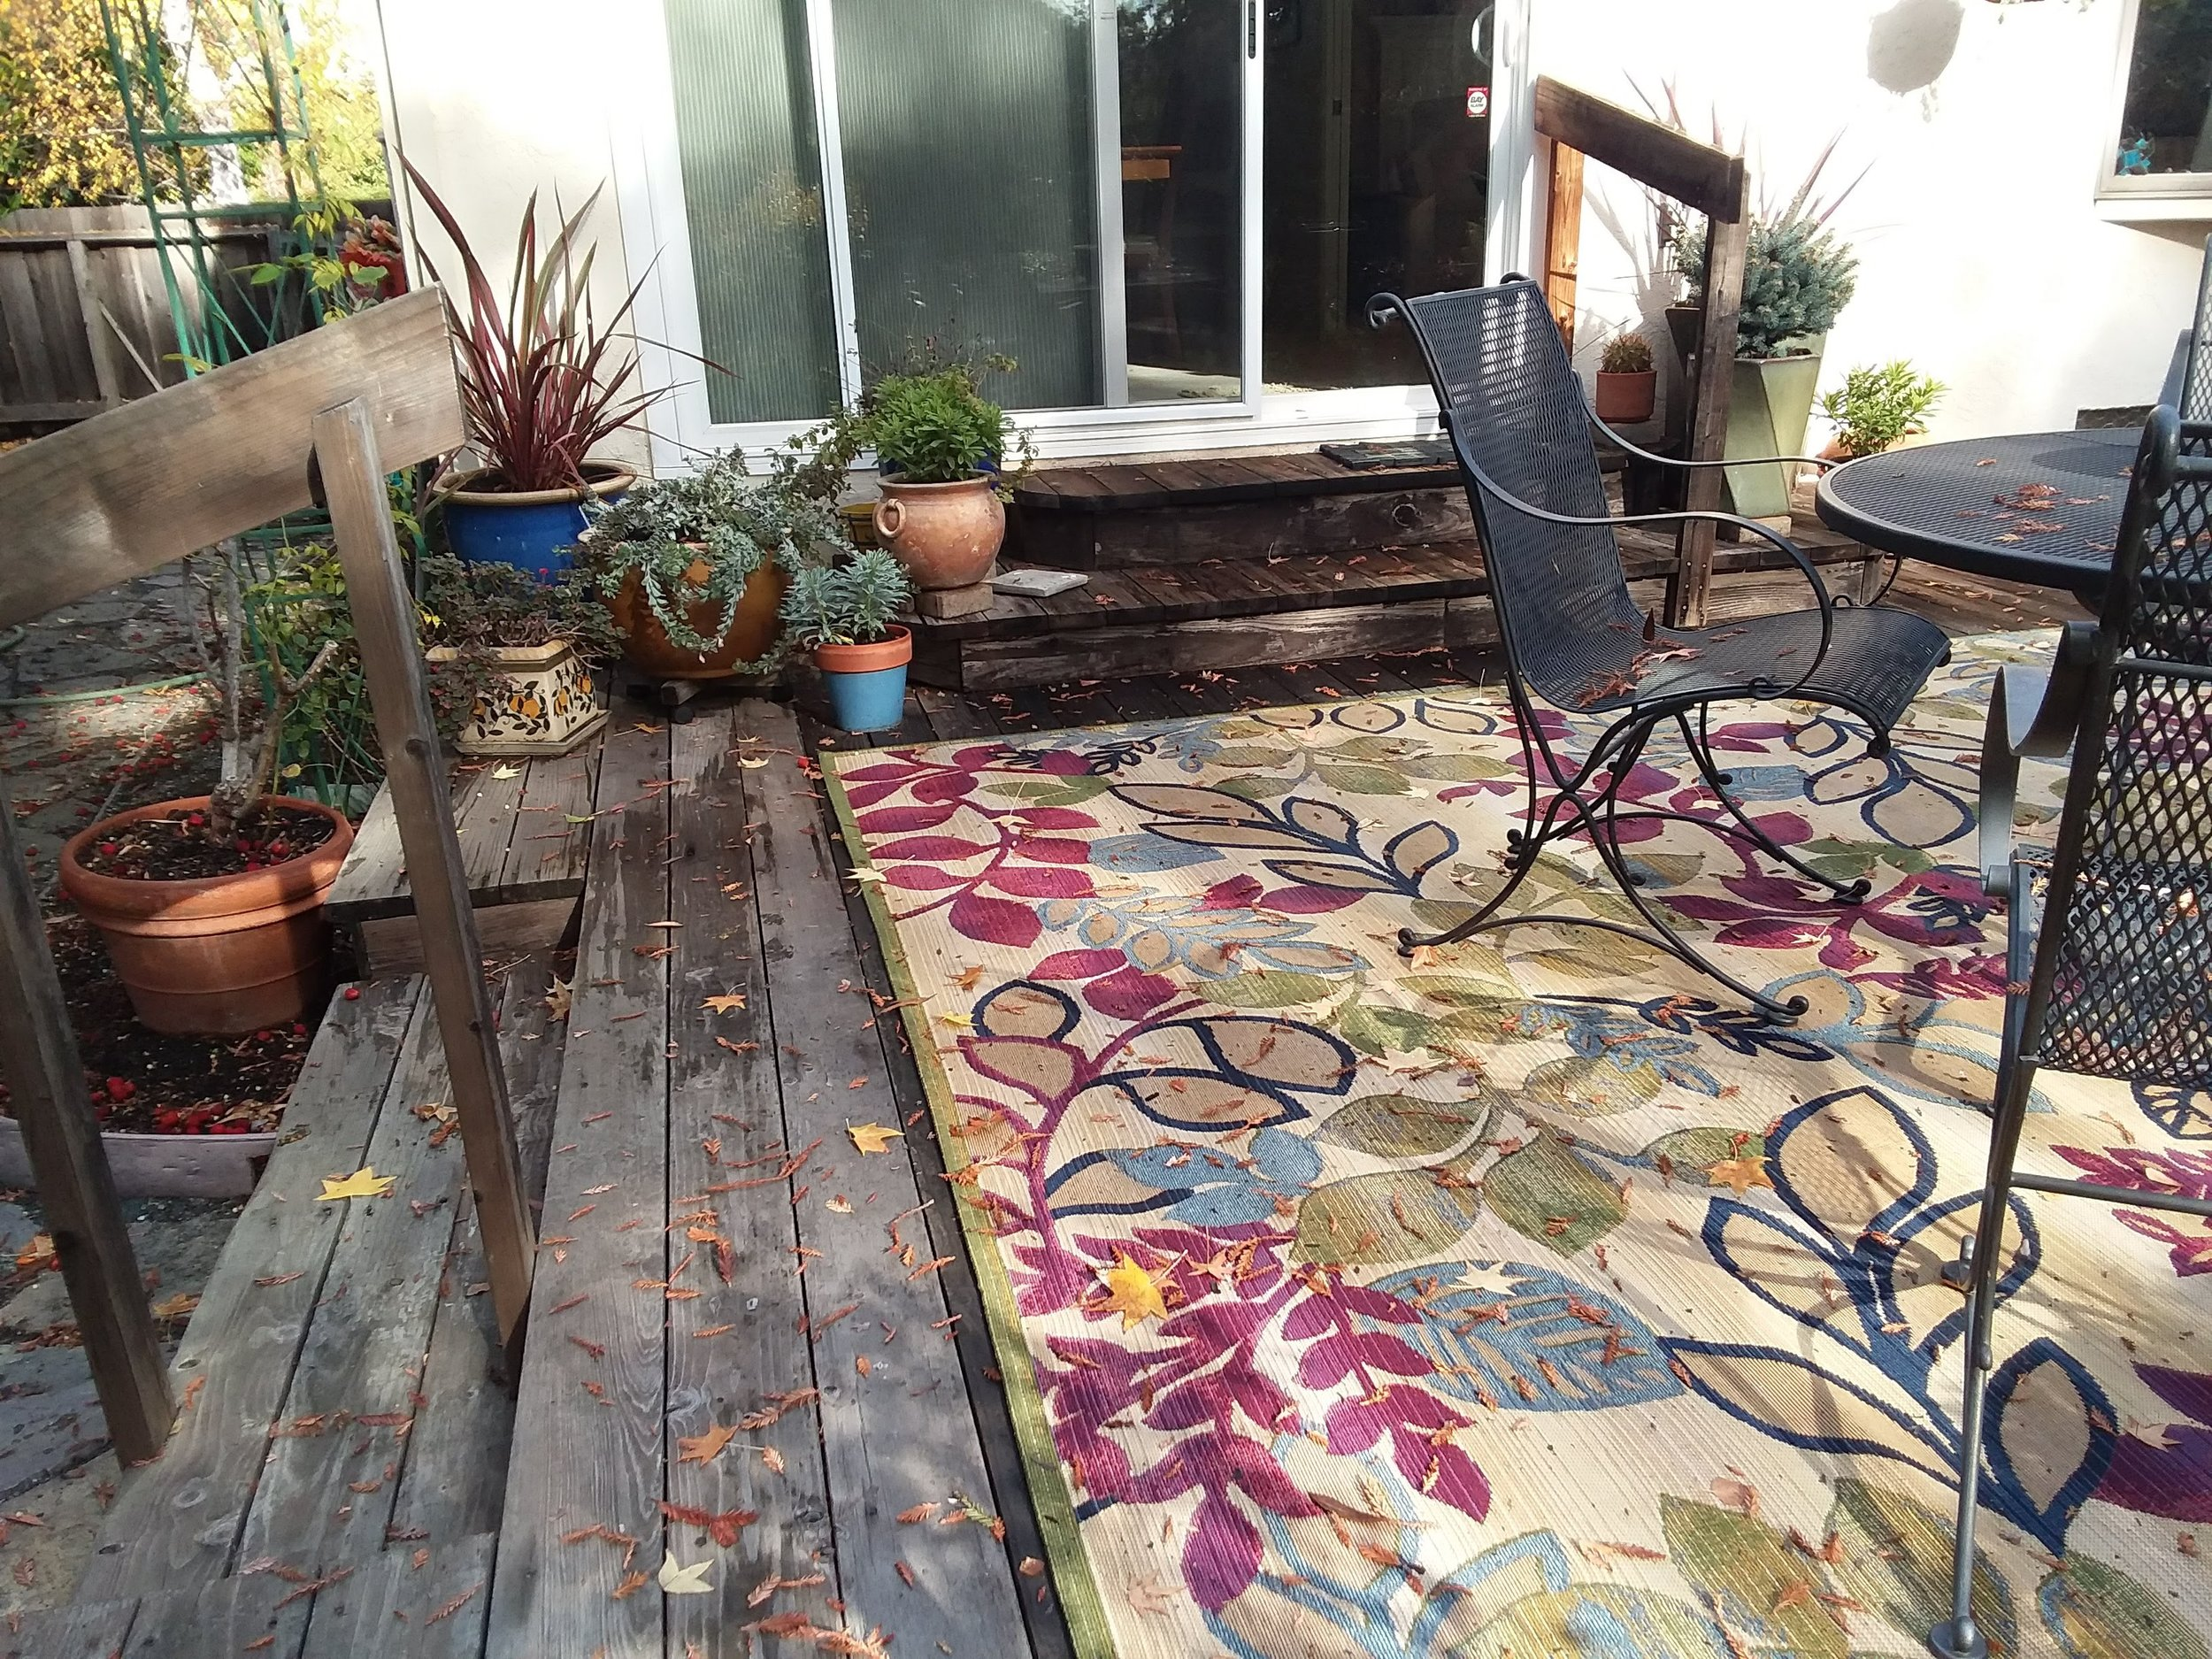 M'lou's back patio on Mon., Nov. 26, 2018 showing deck pots and area rug -2.jpg